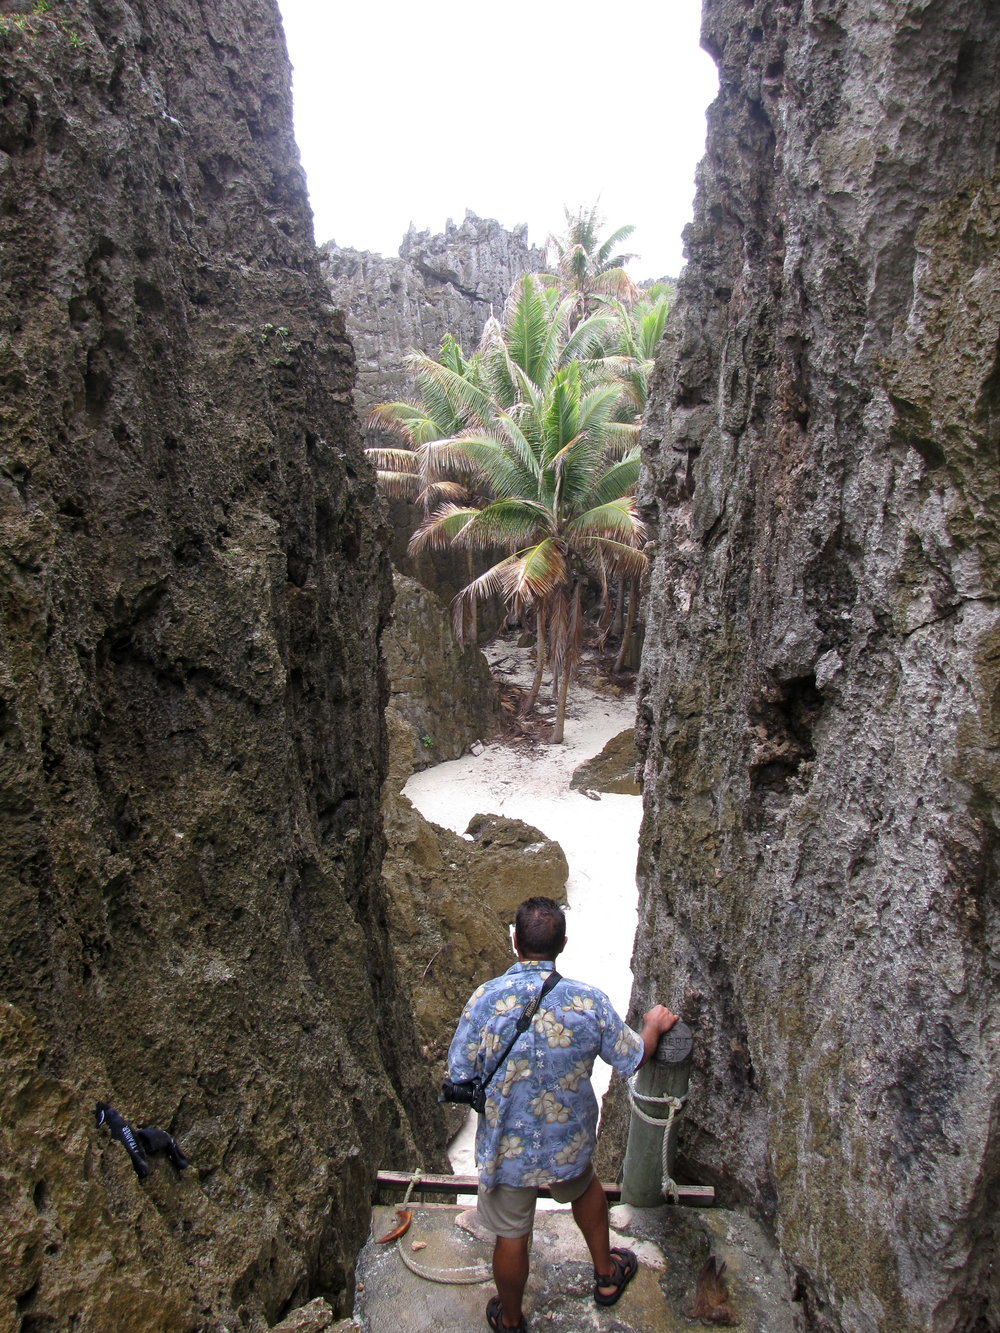 One of the most unique sites was the Togo (pronounced Tongo) Chasm. A narrow cleft in the limestone walls revealed an oasis complete with palm trees, white sand, but no water. We could, however hear the crashing OF the waves not far away. Above, Rob prepares to descend a very, very steep vertical ladder.